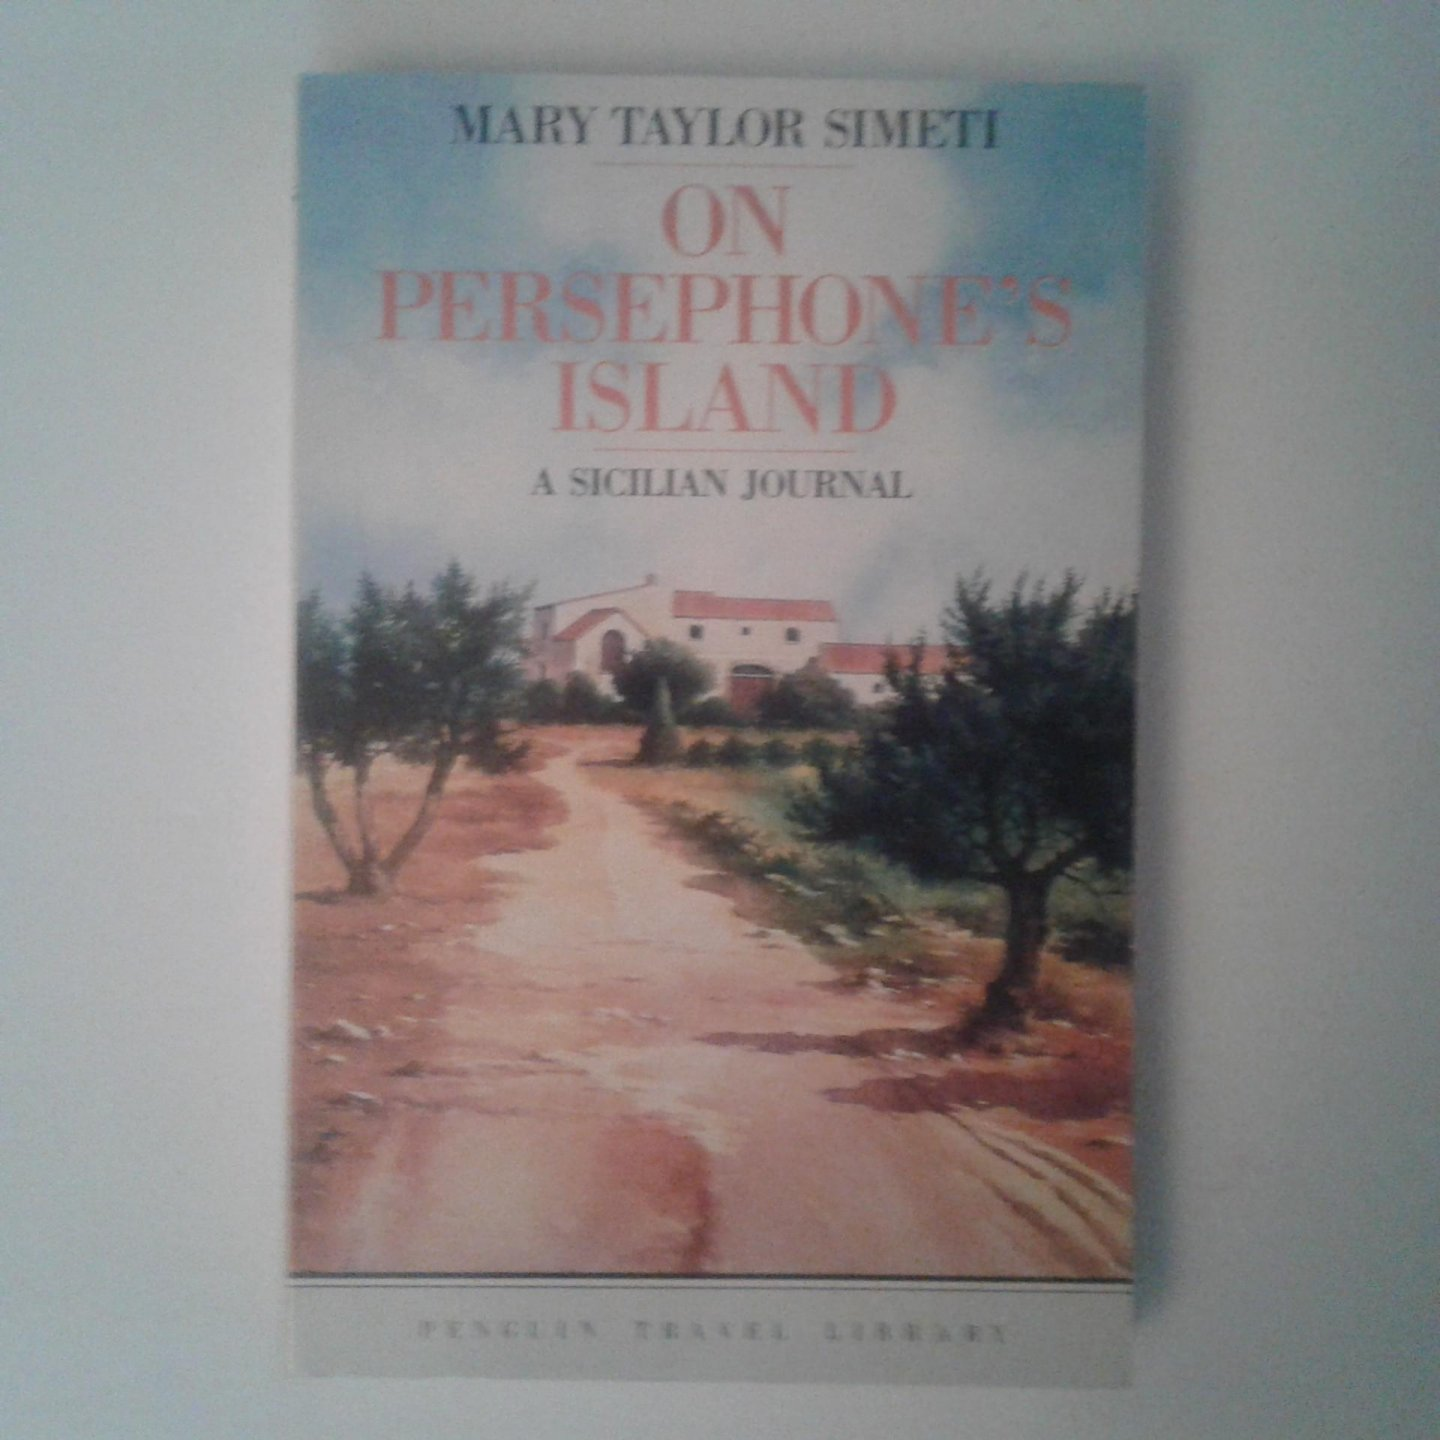 Simeti,  Mary Taylor - On Persephones Island